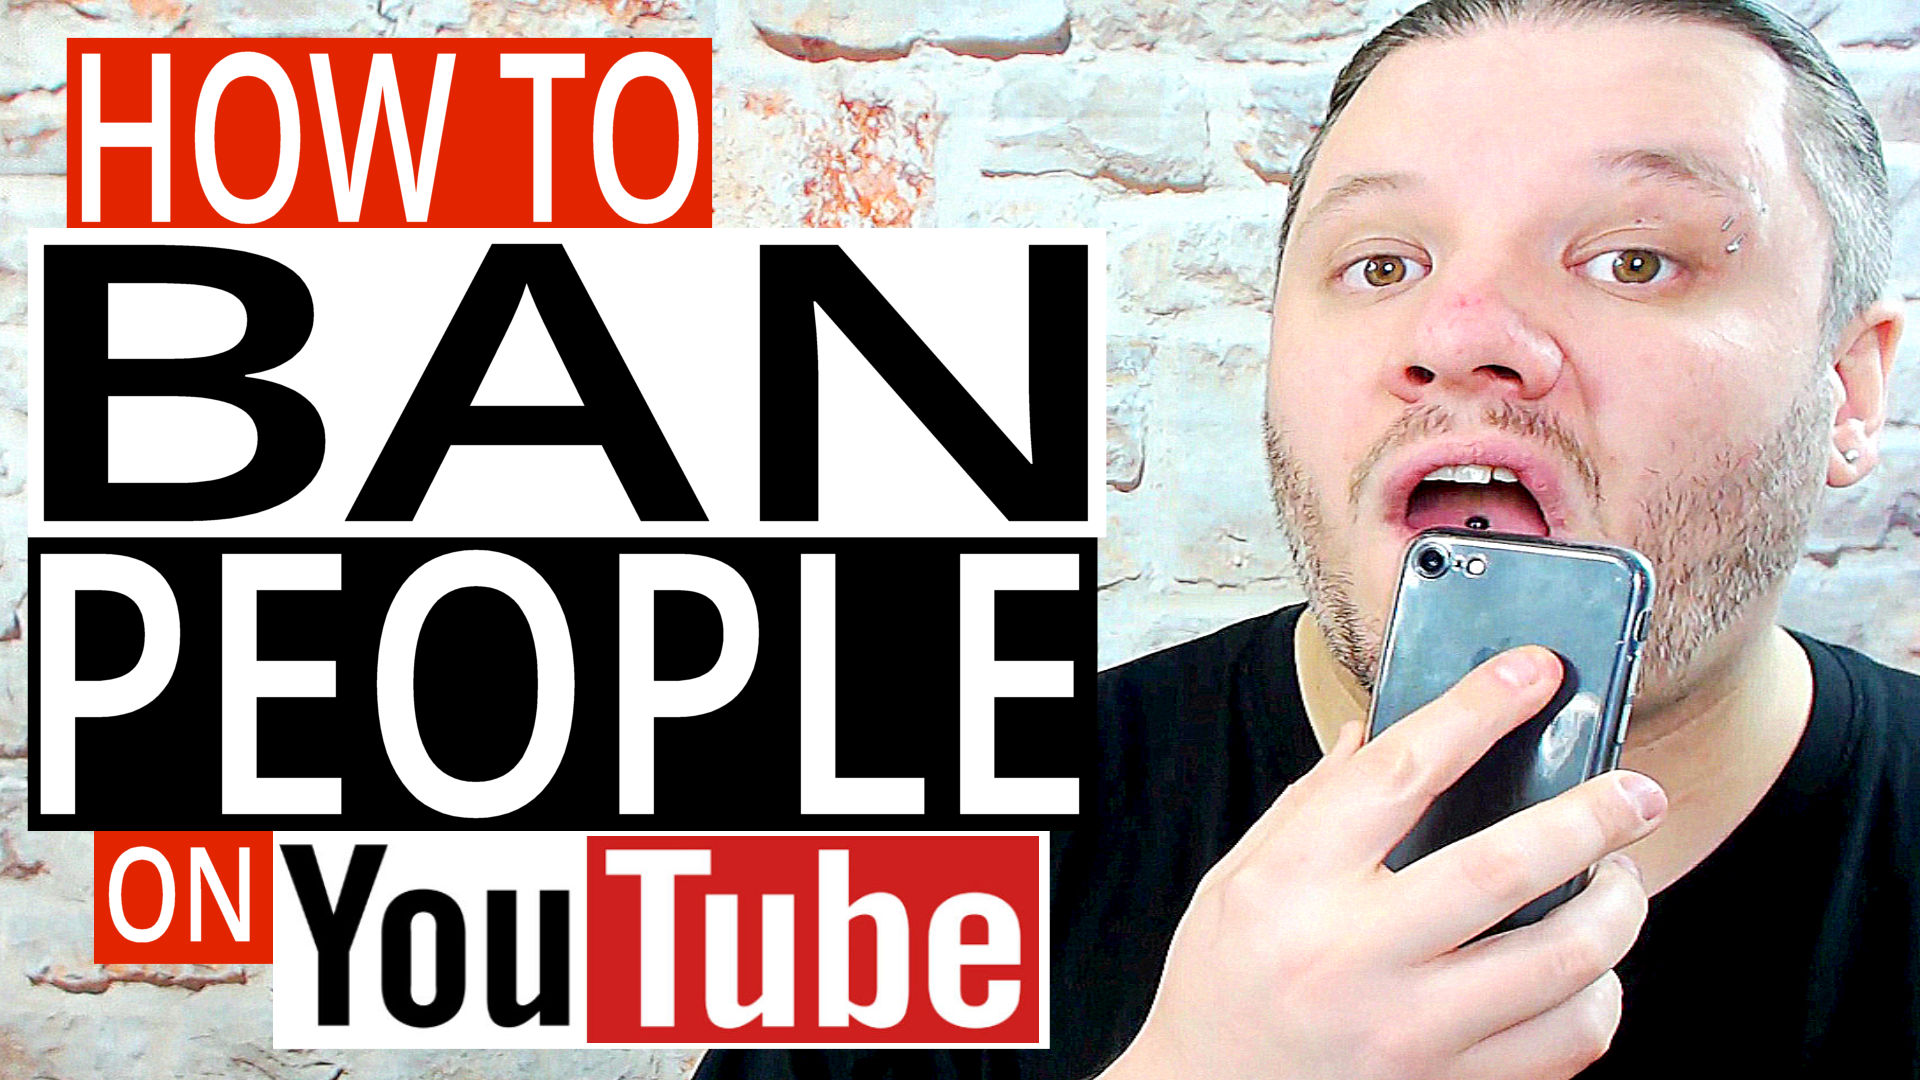 How To Ban People On YouTube,Block People From Your Youtube Channel,block on youtube,ban someone youtube,block users on youtube,how to block someone on your youtube channel,how do you block on youtube,how to block on youtube on phone,block negative comments,how to ban someones youtube channel,how to ban someone from your youtube channel,how to block people,how to block people on youtube,how to ban people,ban people on youtube,block people on youtube,ban people